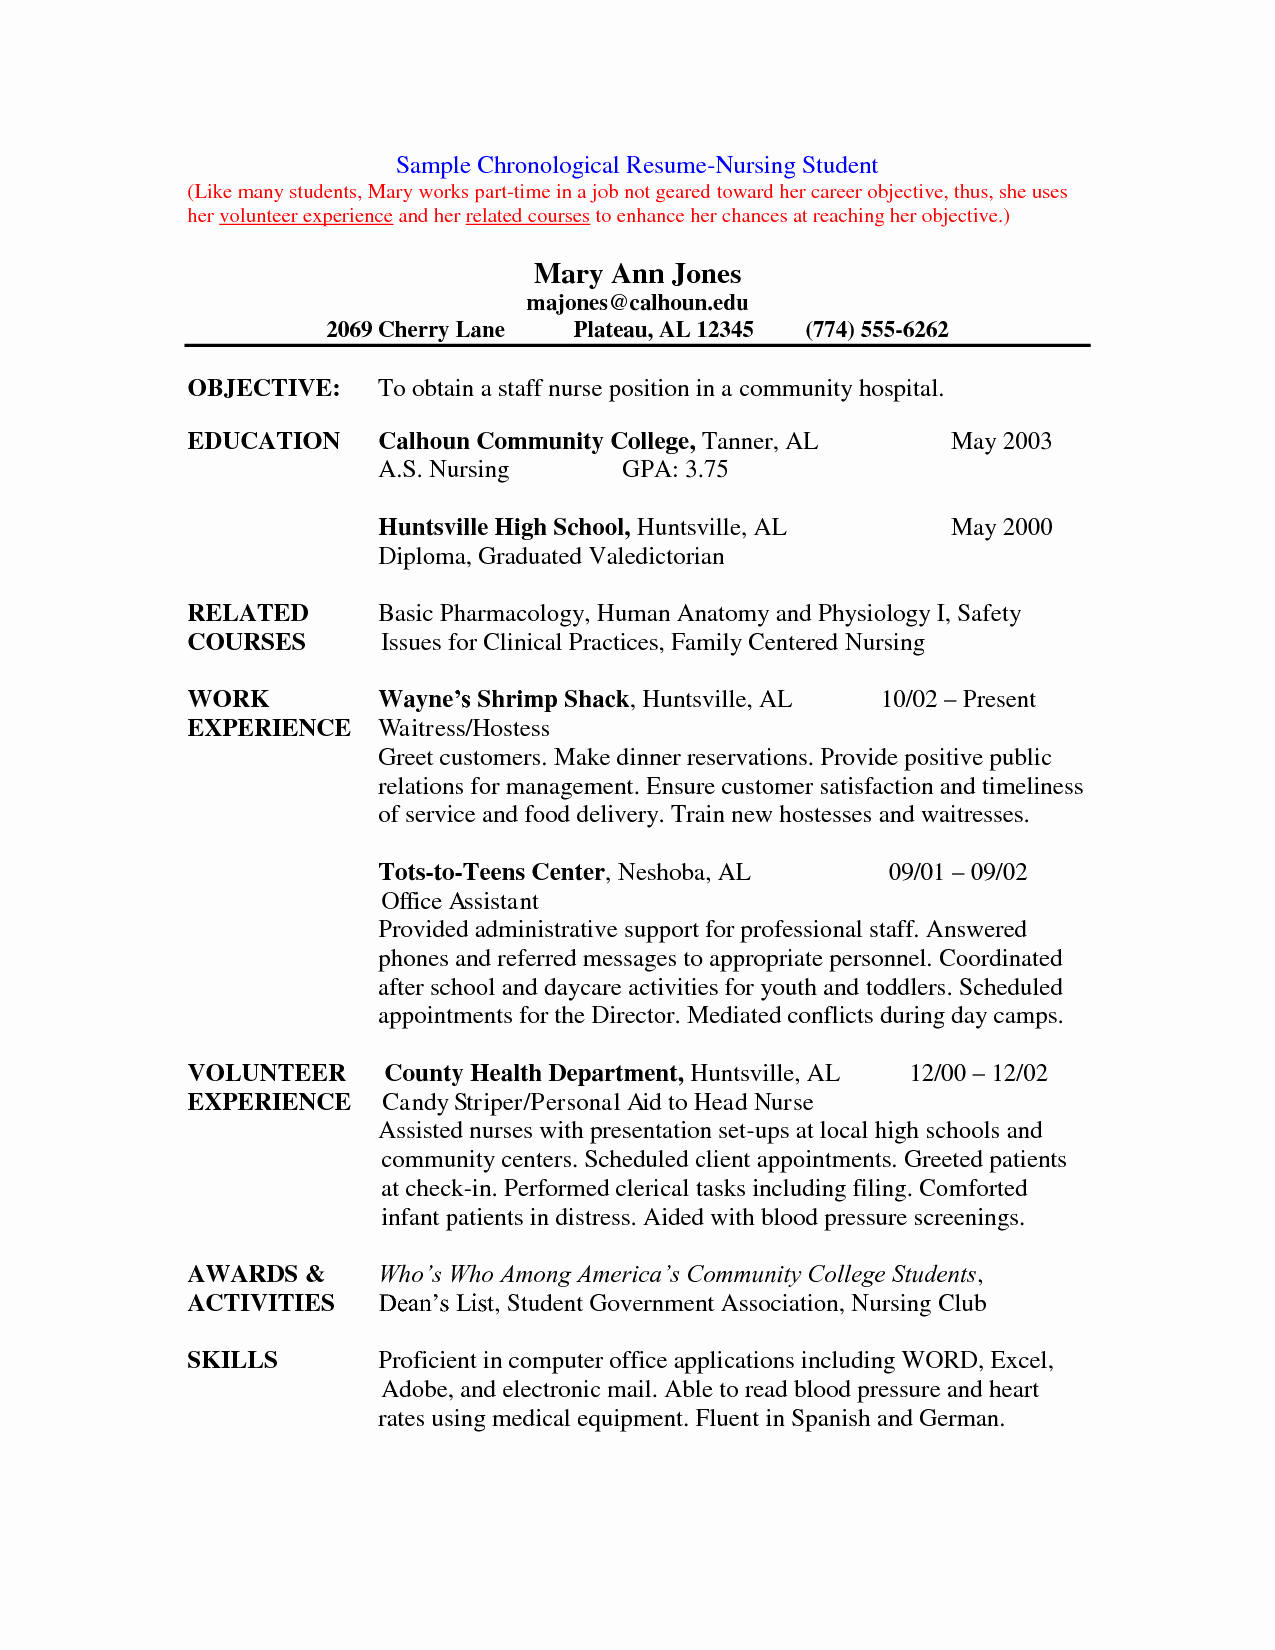 Nursing Student Resume Examples New Nursing Student Resume